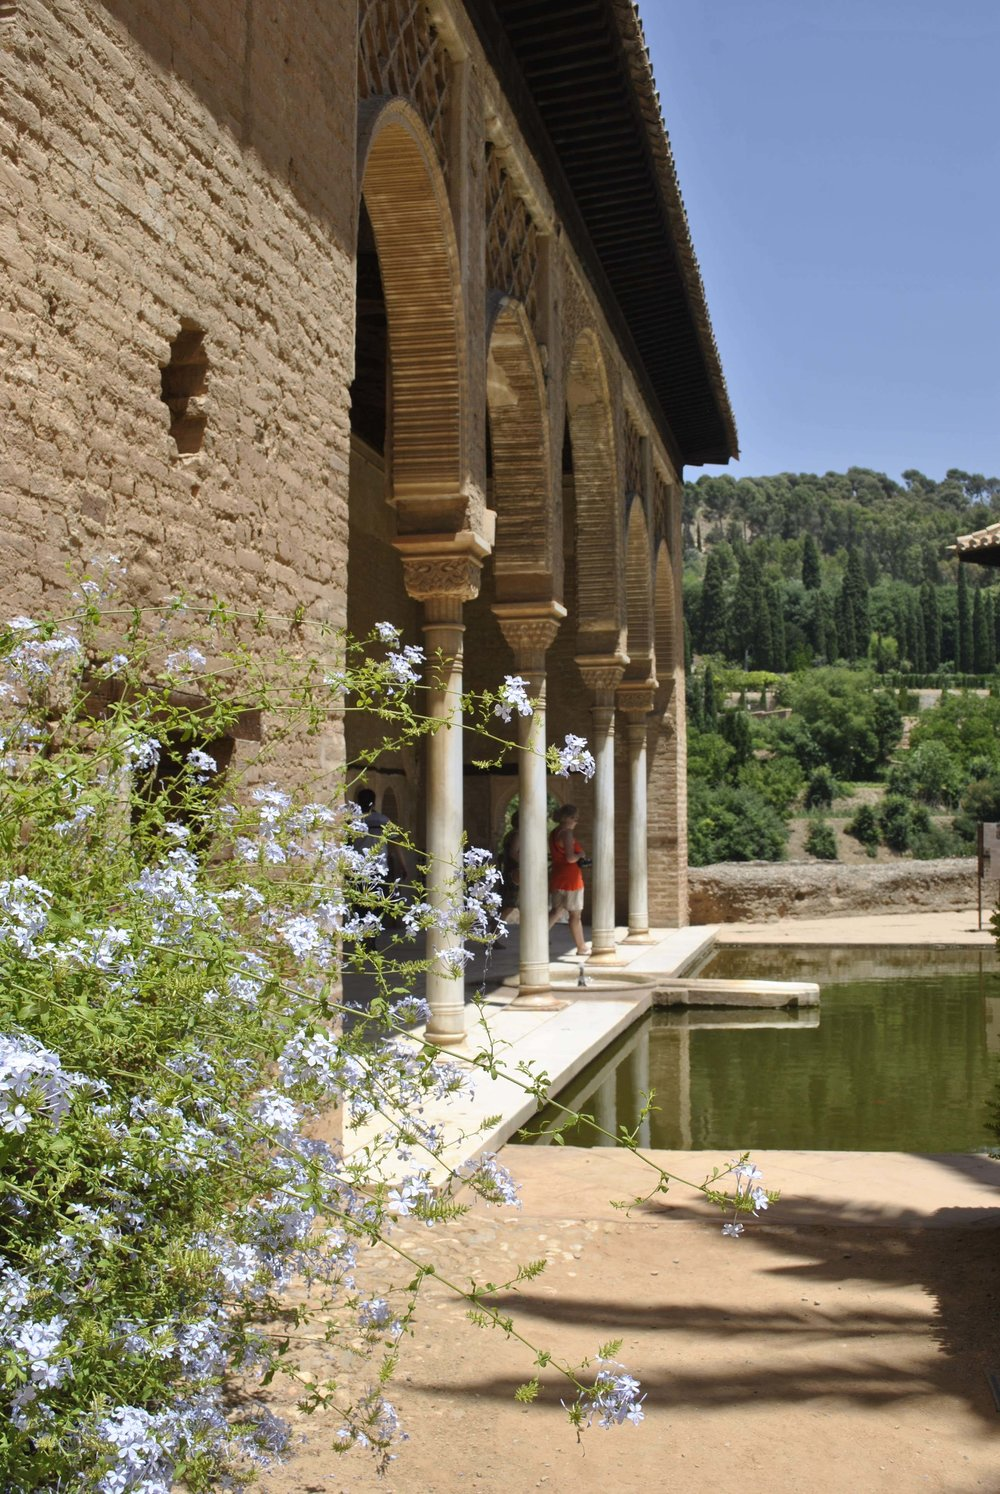 ©Detail Movement - Alhambra Partal Palace and Gardens (no 31 on the map)